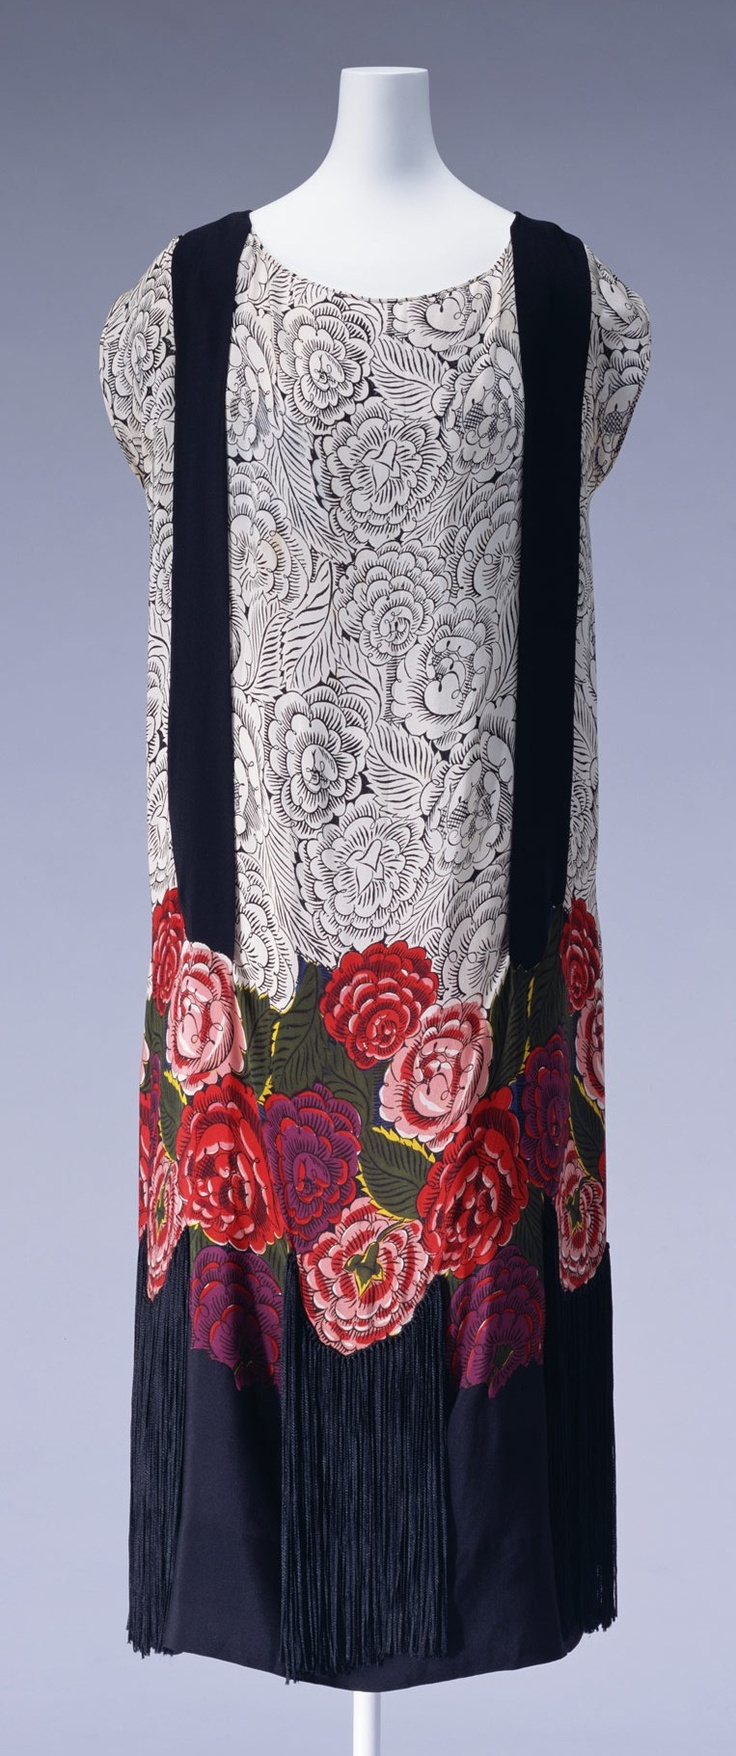 "Dress, Zimmermann / Raul Dufy (textile), Paris, France: ca. 1922, silk crepe with rose print, panels of crêpe de Chine, rayon fringe. ""The textile of this dress was designed by painter Raoul Dufy (1877–1953) for a famous textile manufacturer Bianchini-Ferrier in Lyon."